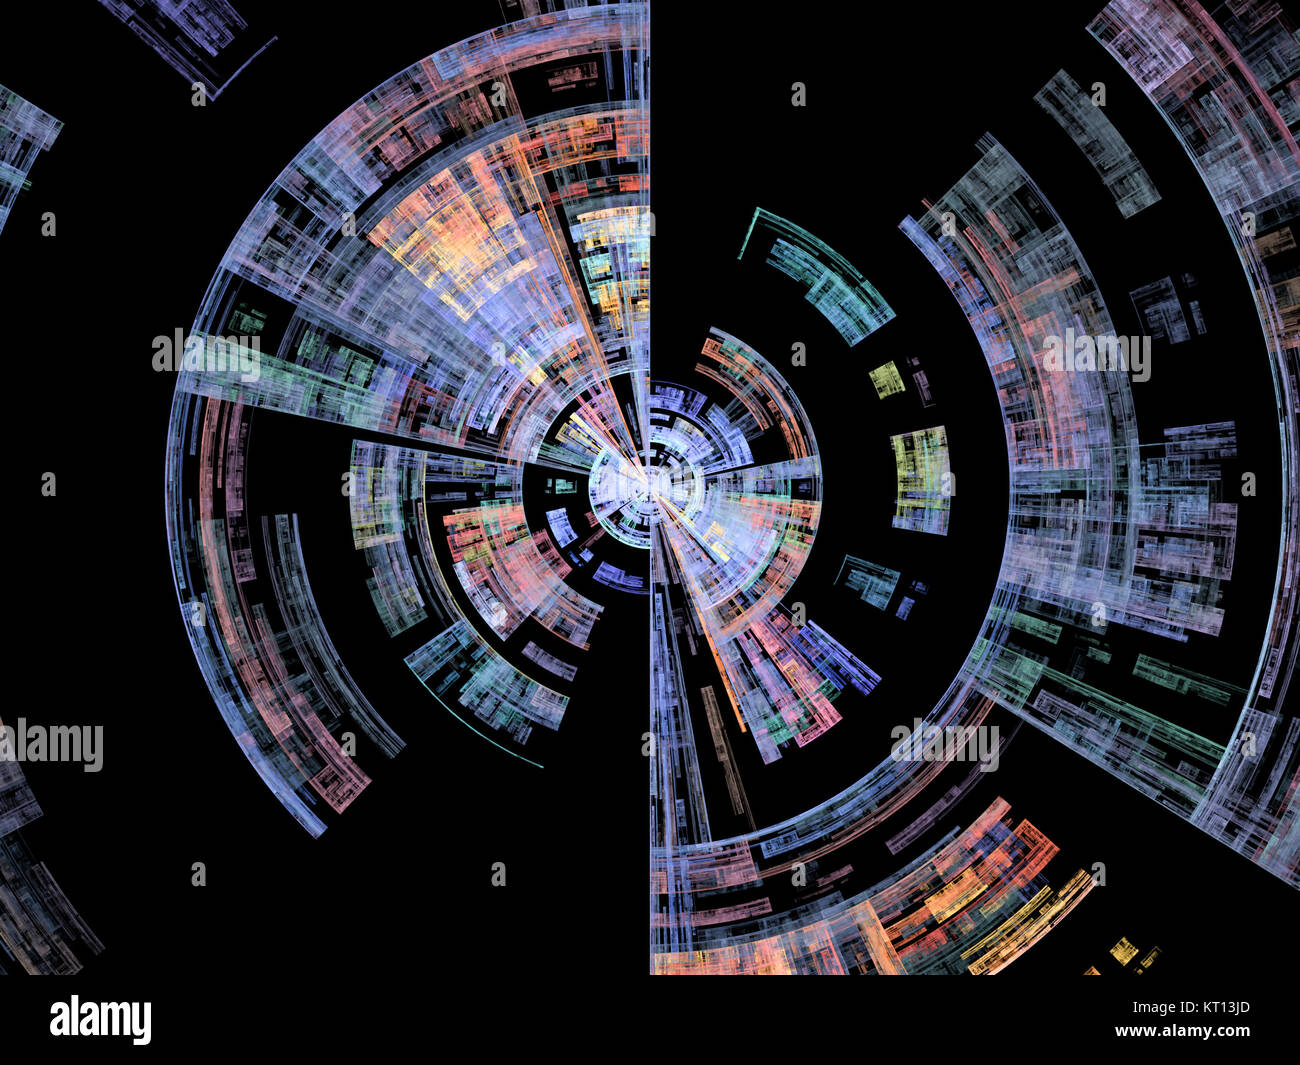 Conceptual Burst Rotation - Stock Image